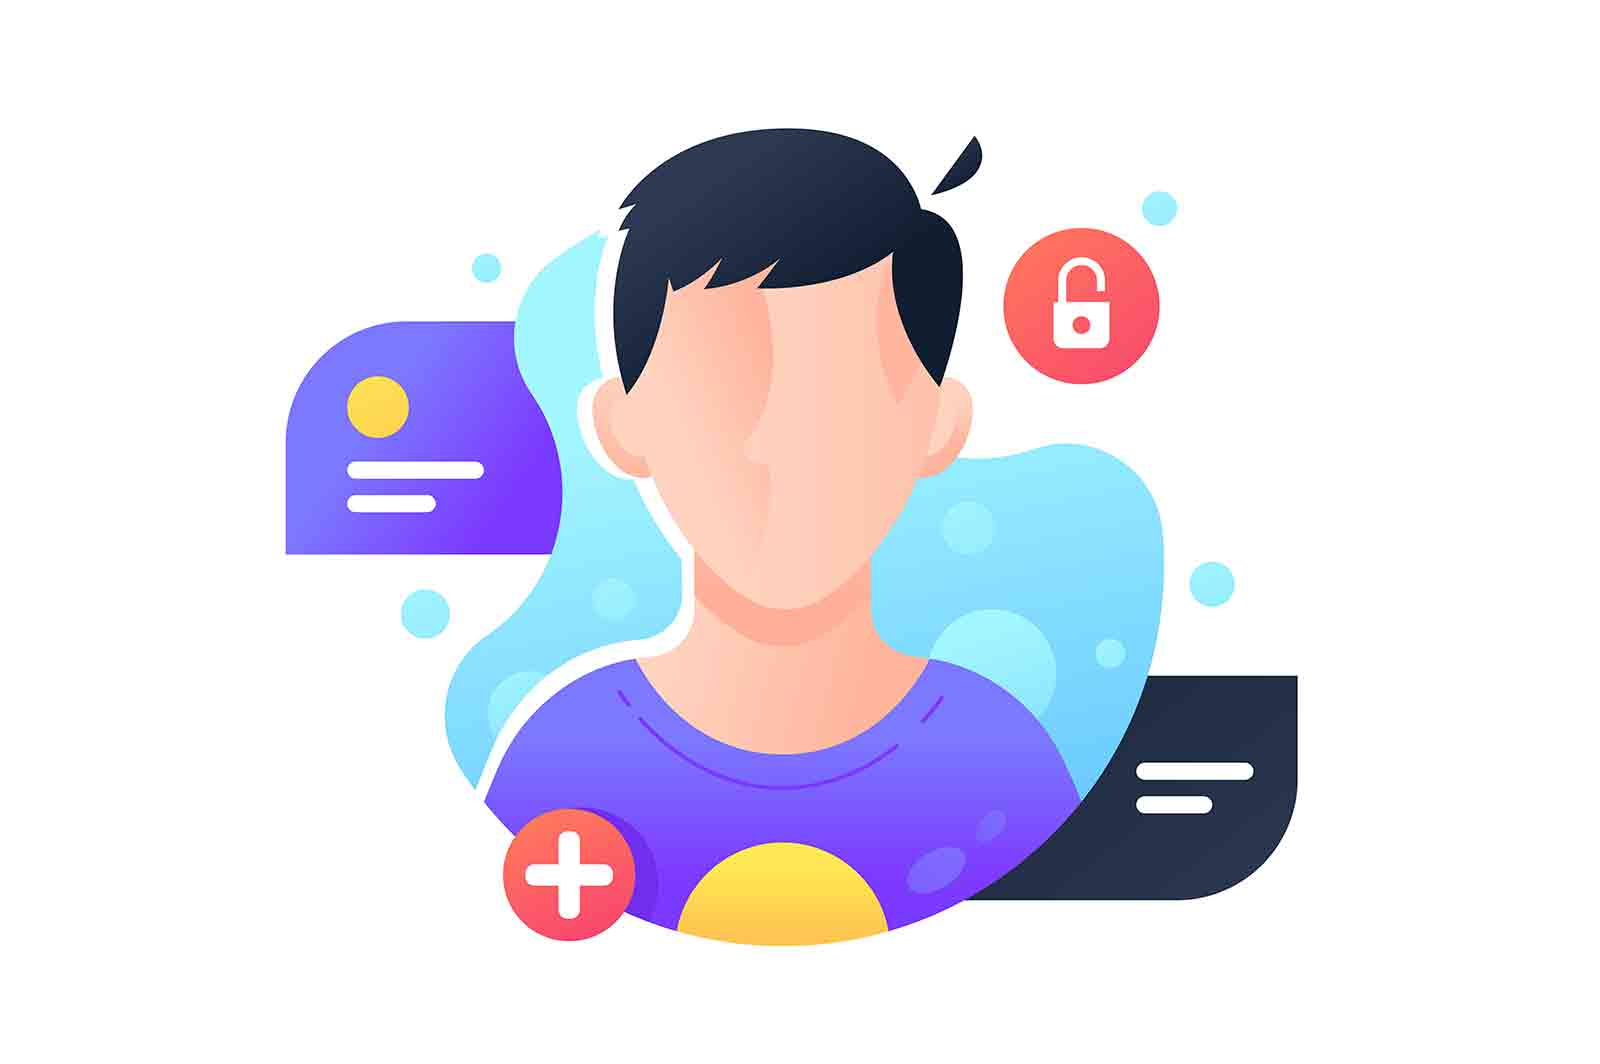 Man user account avatar illustration, icon. Isolated icon concept of male character picture using for online verification and presentation.